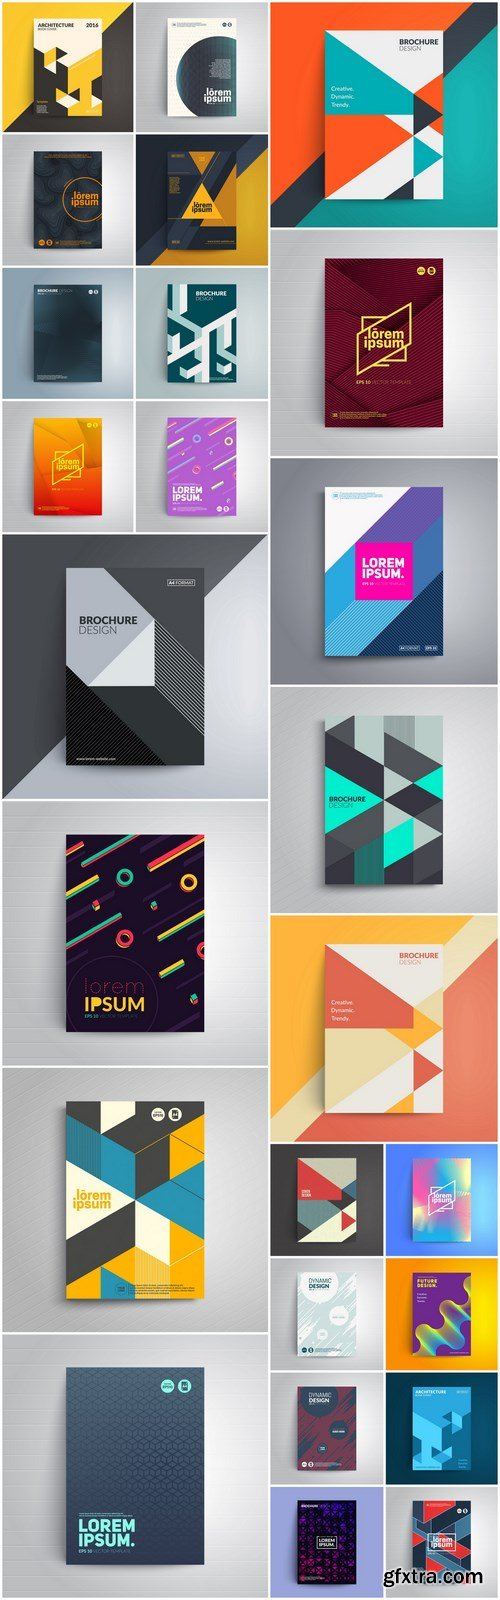 Abstract Cover Template #2 - 25 Vector